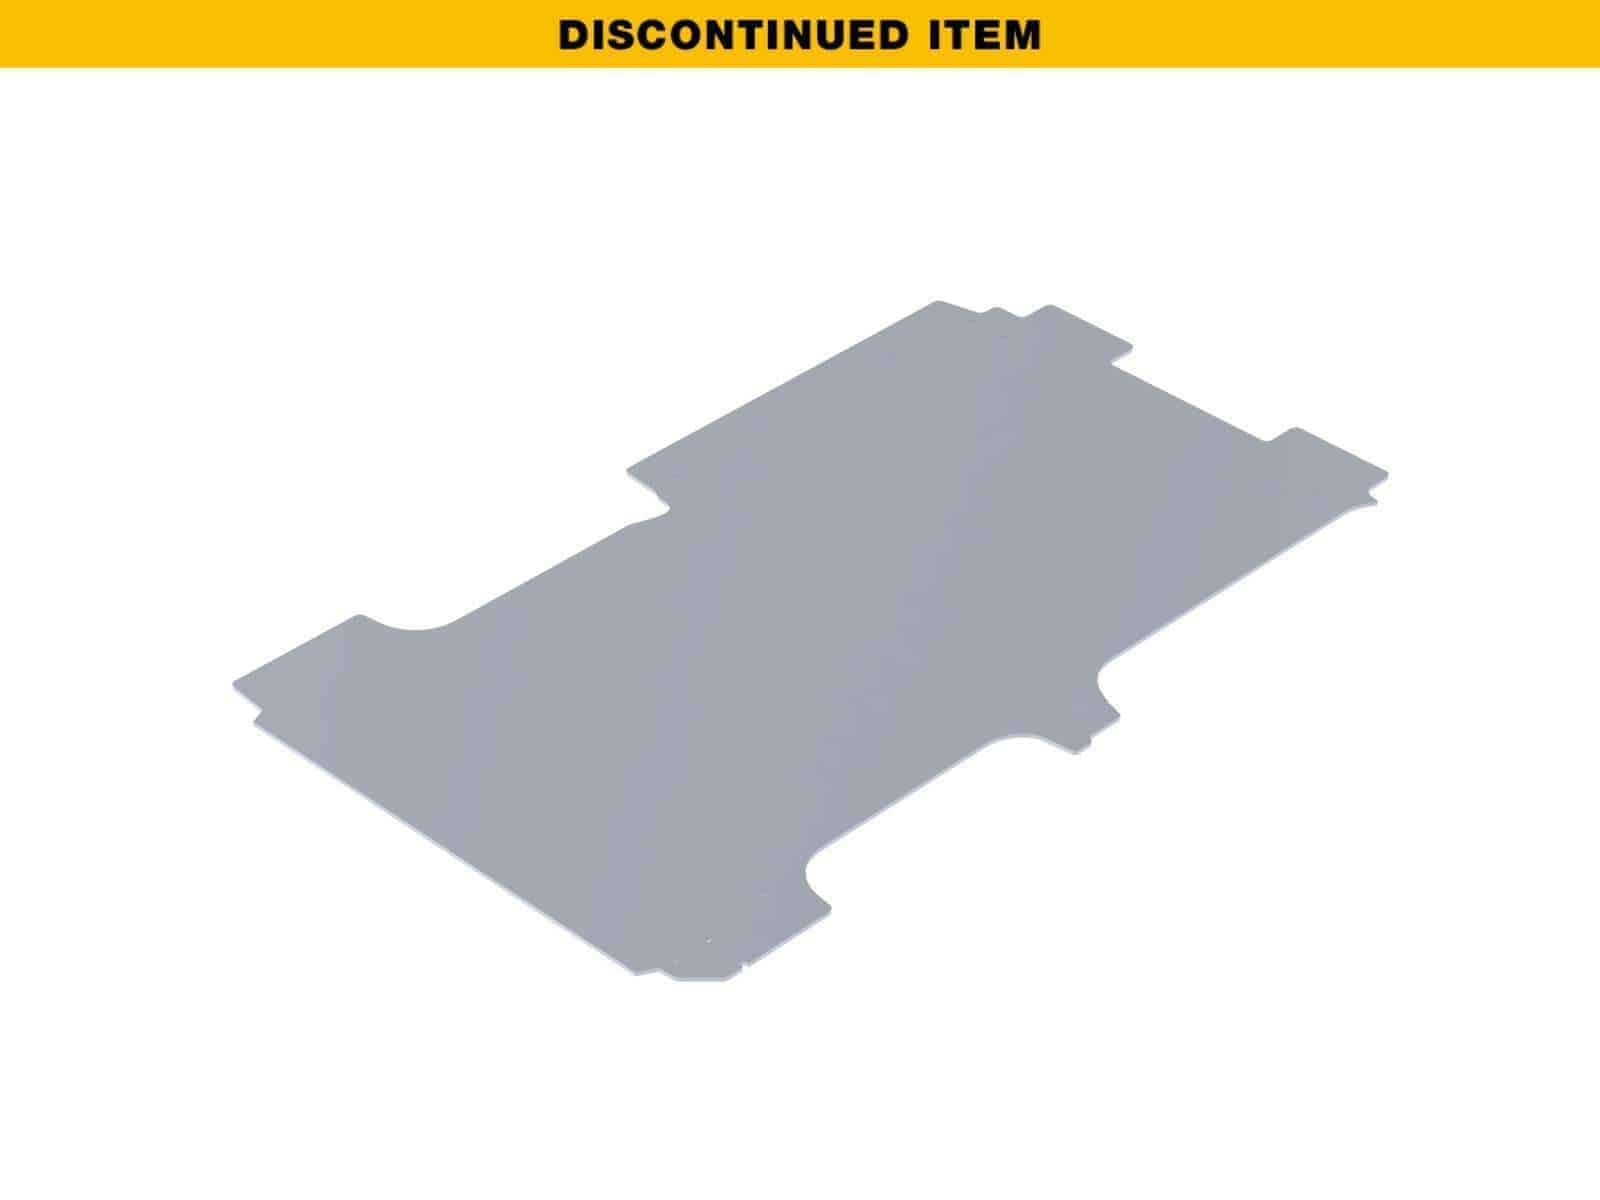 HD-Ultragrip-Van-Floor-Liner-NV-6525-discontinued